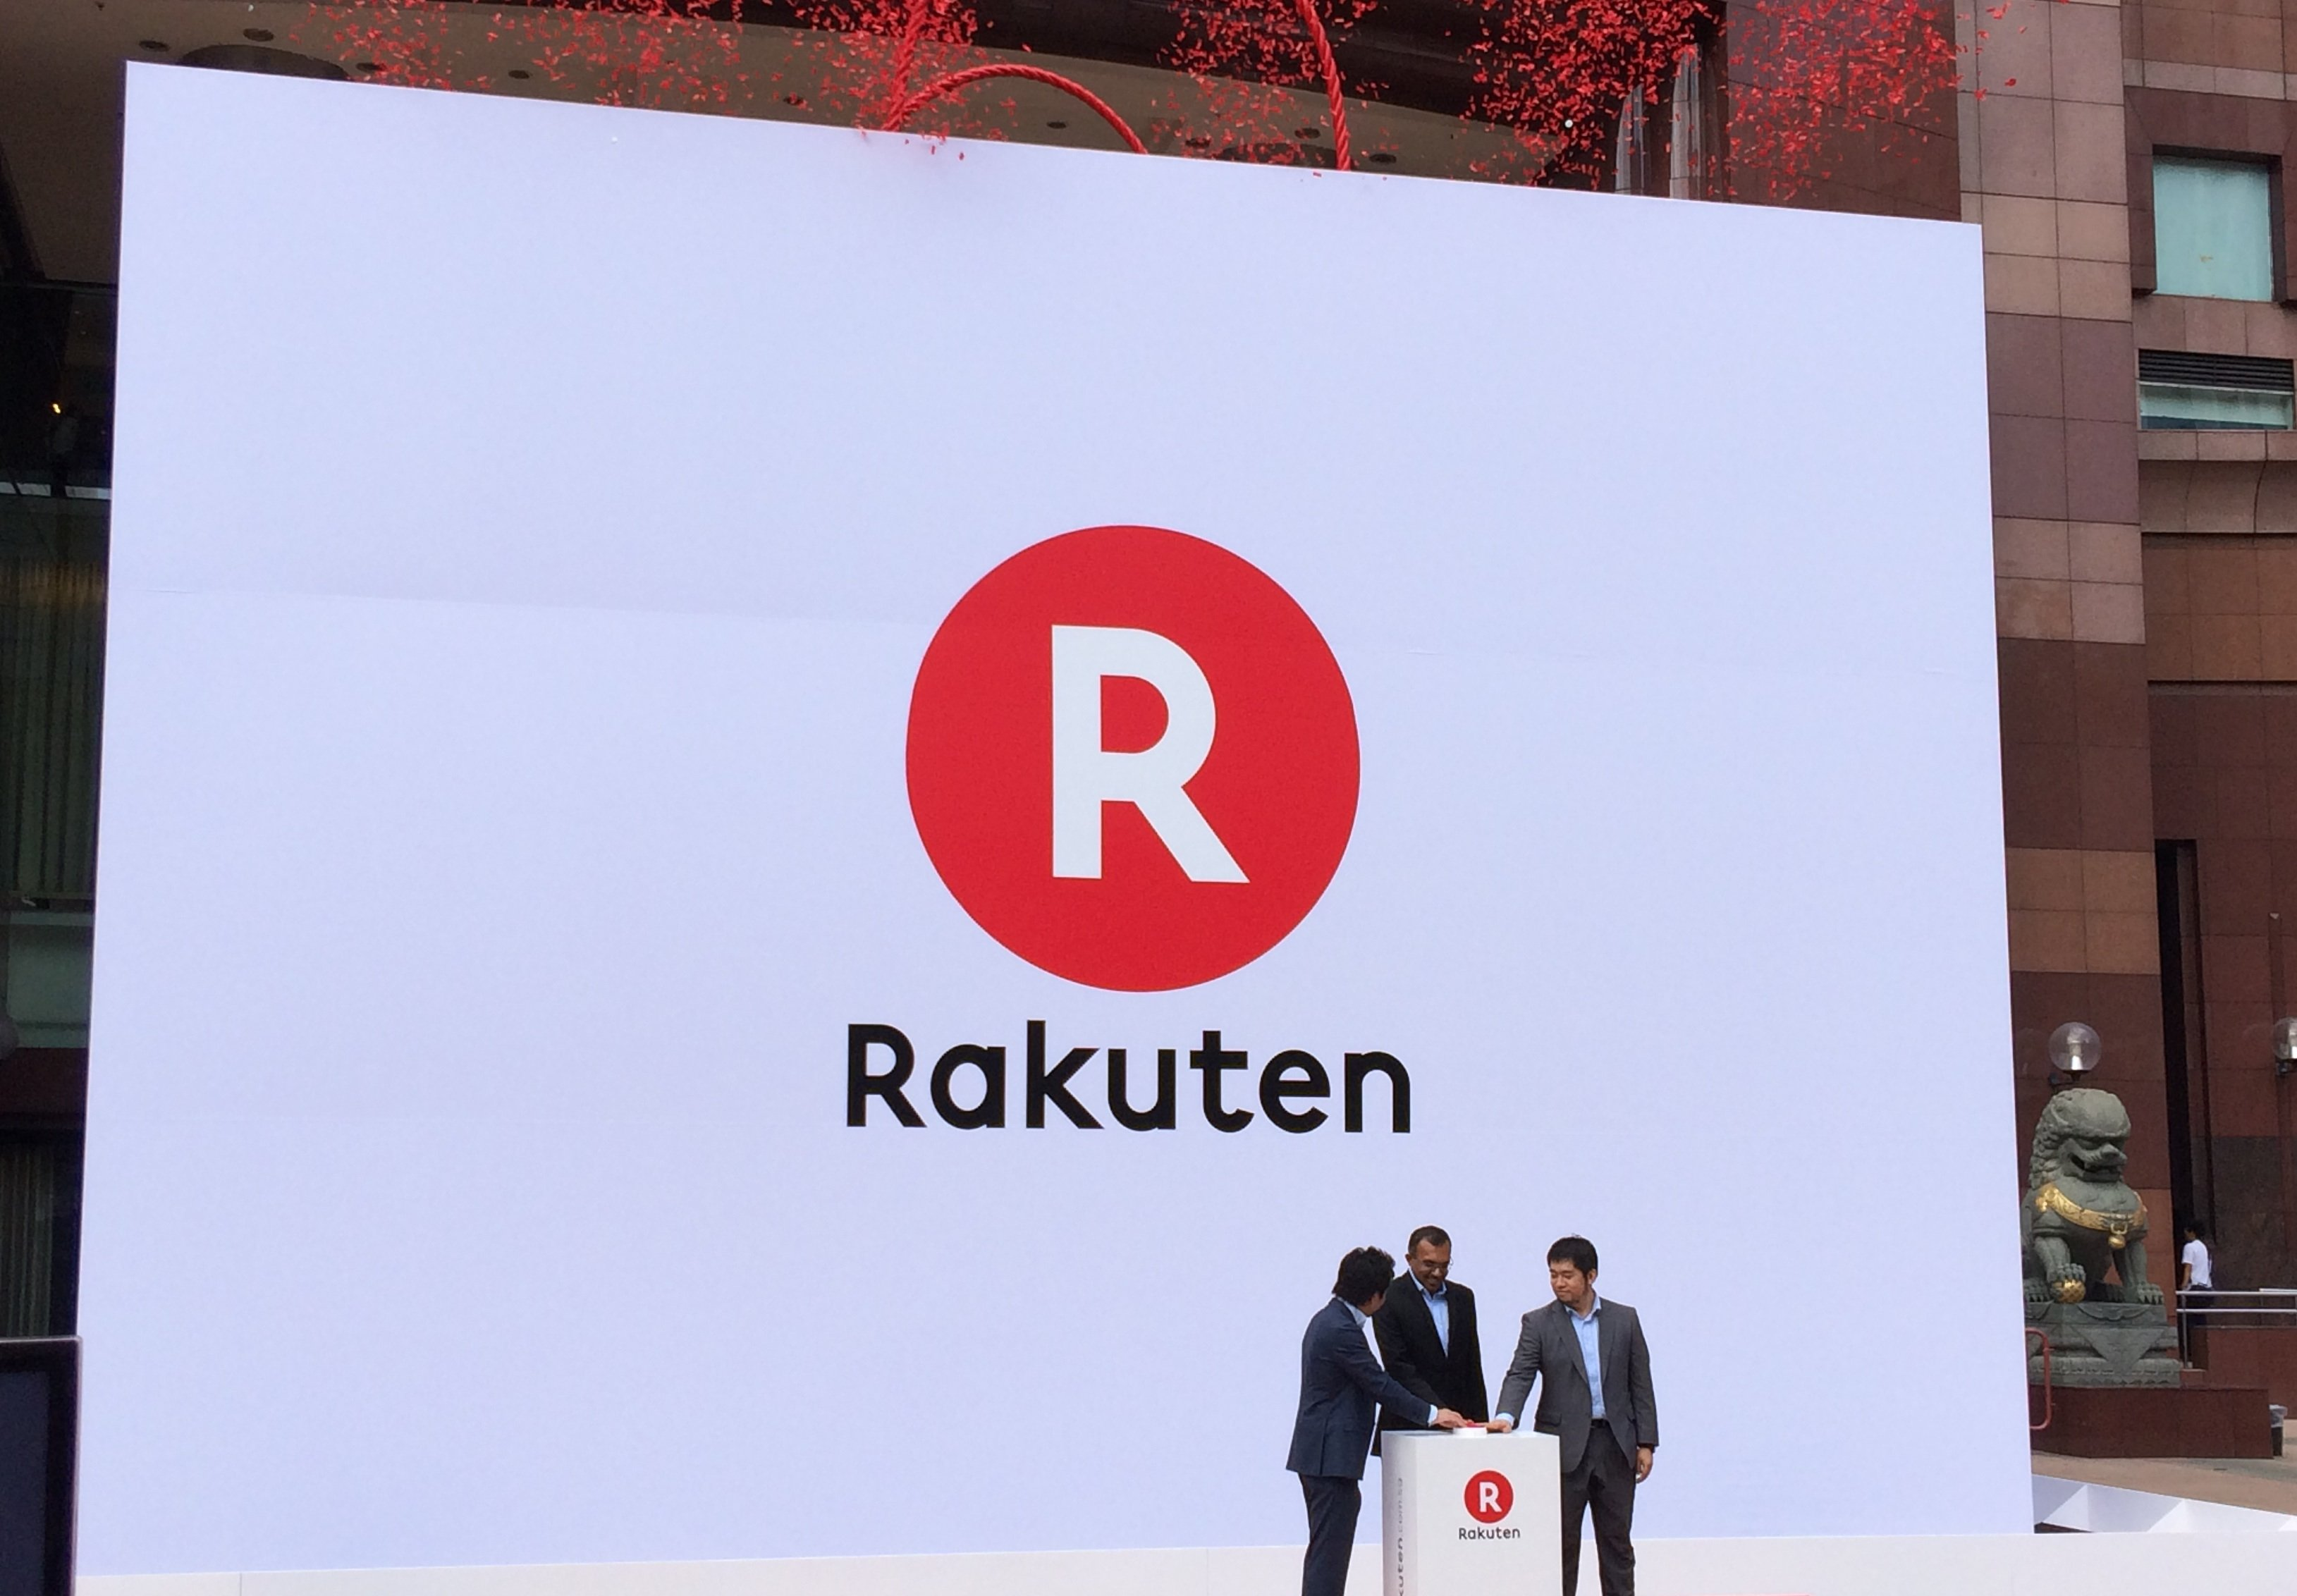 http://thenextweb.com/wp-content/blogs.dir/1/files/2014/03/Rakuten.jpg